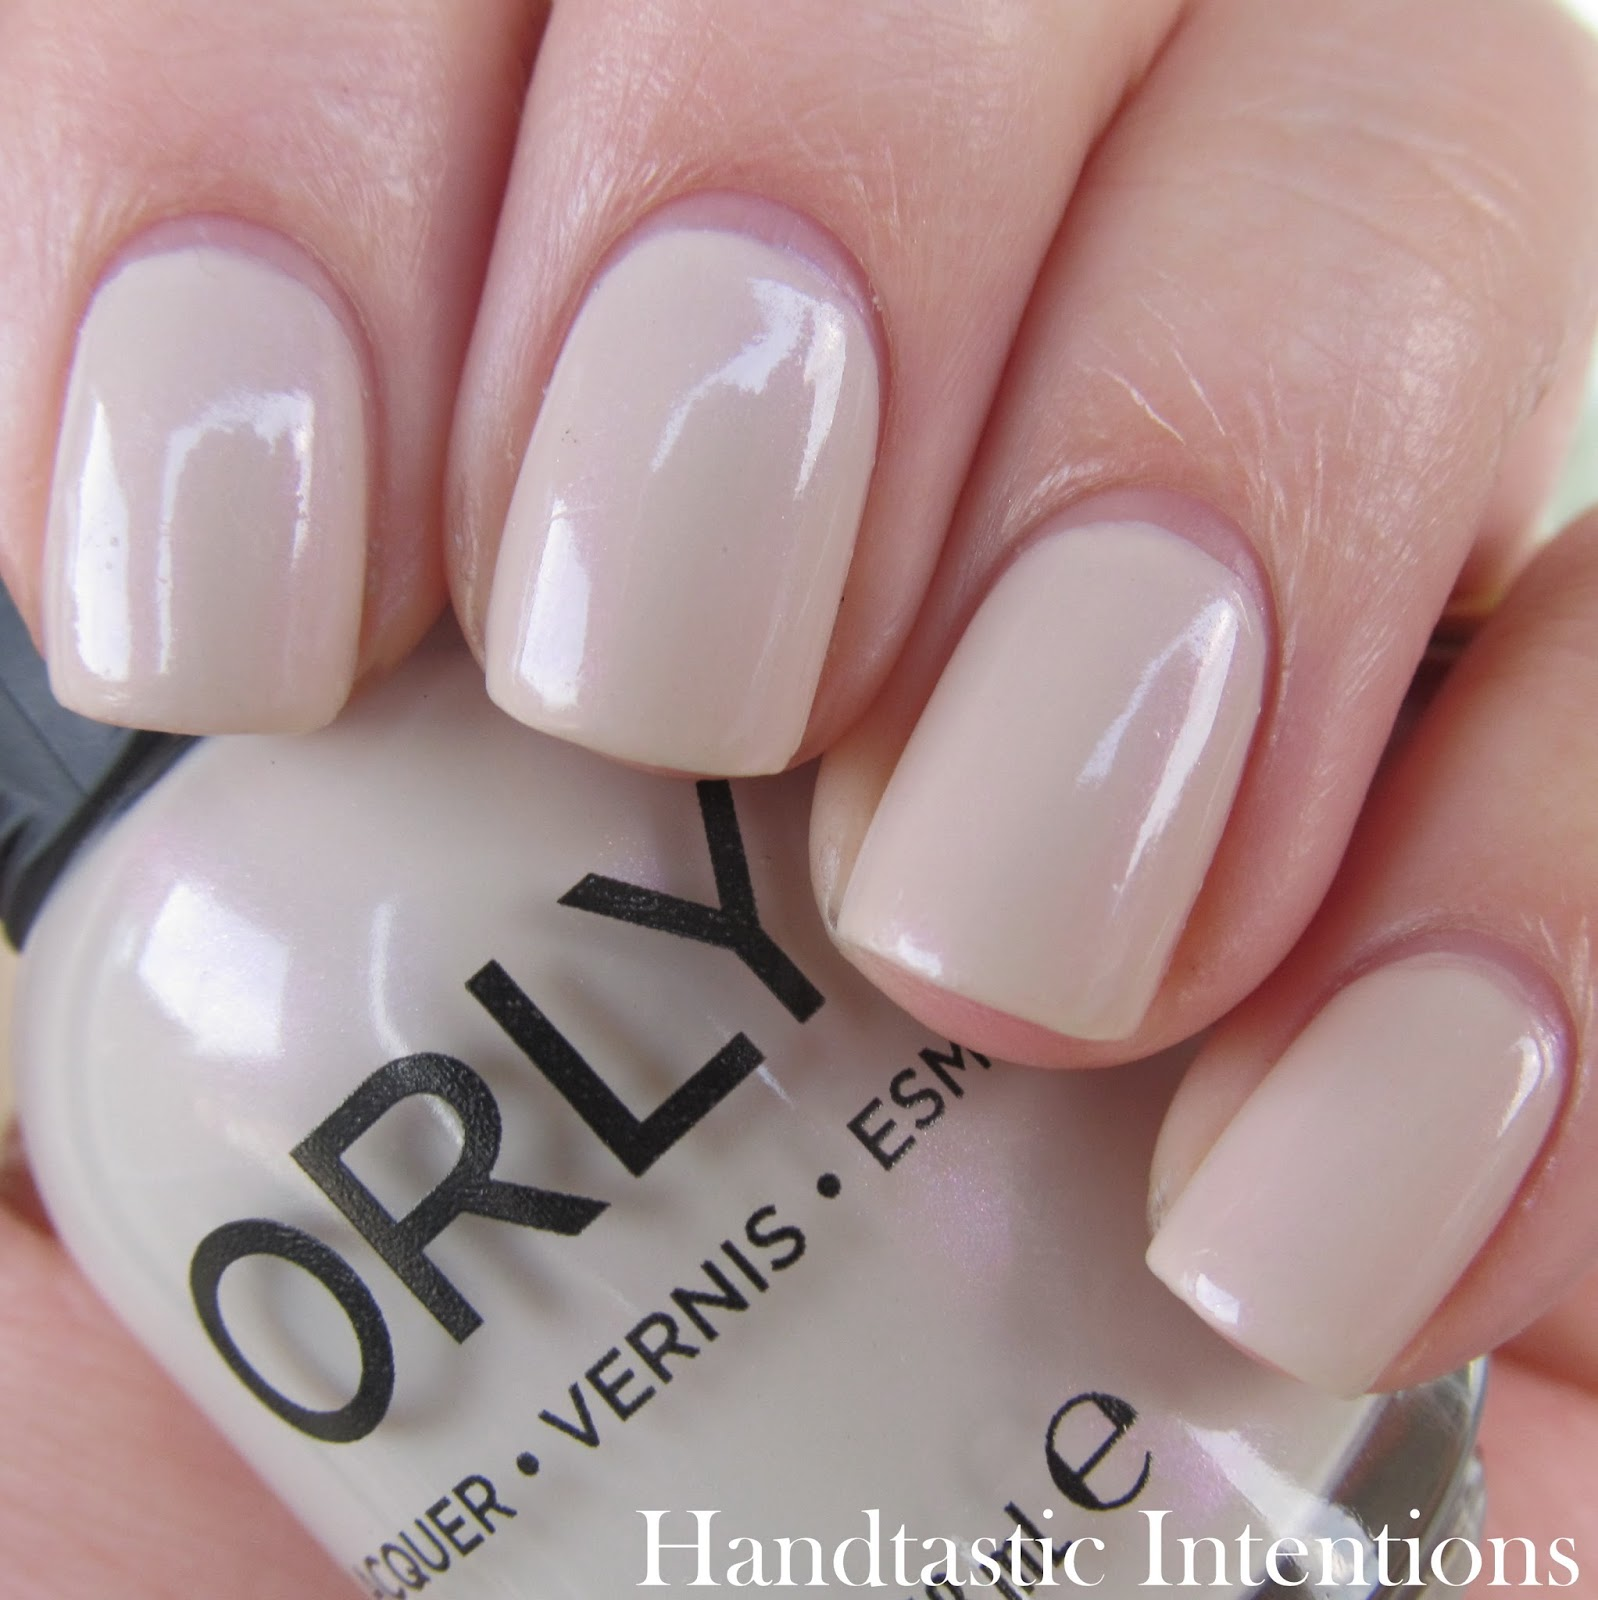 Handtastic Intentions Swatch And Review Of Orly Blush Spring